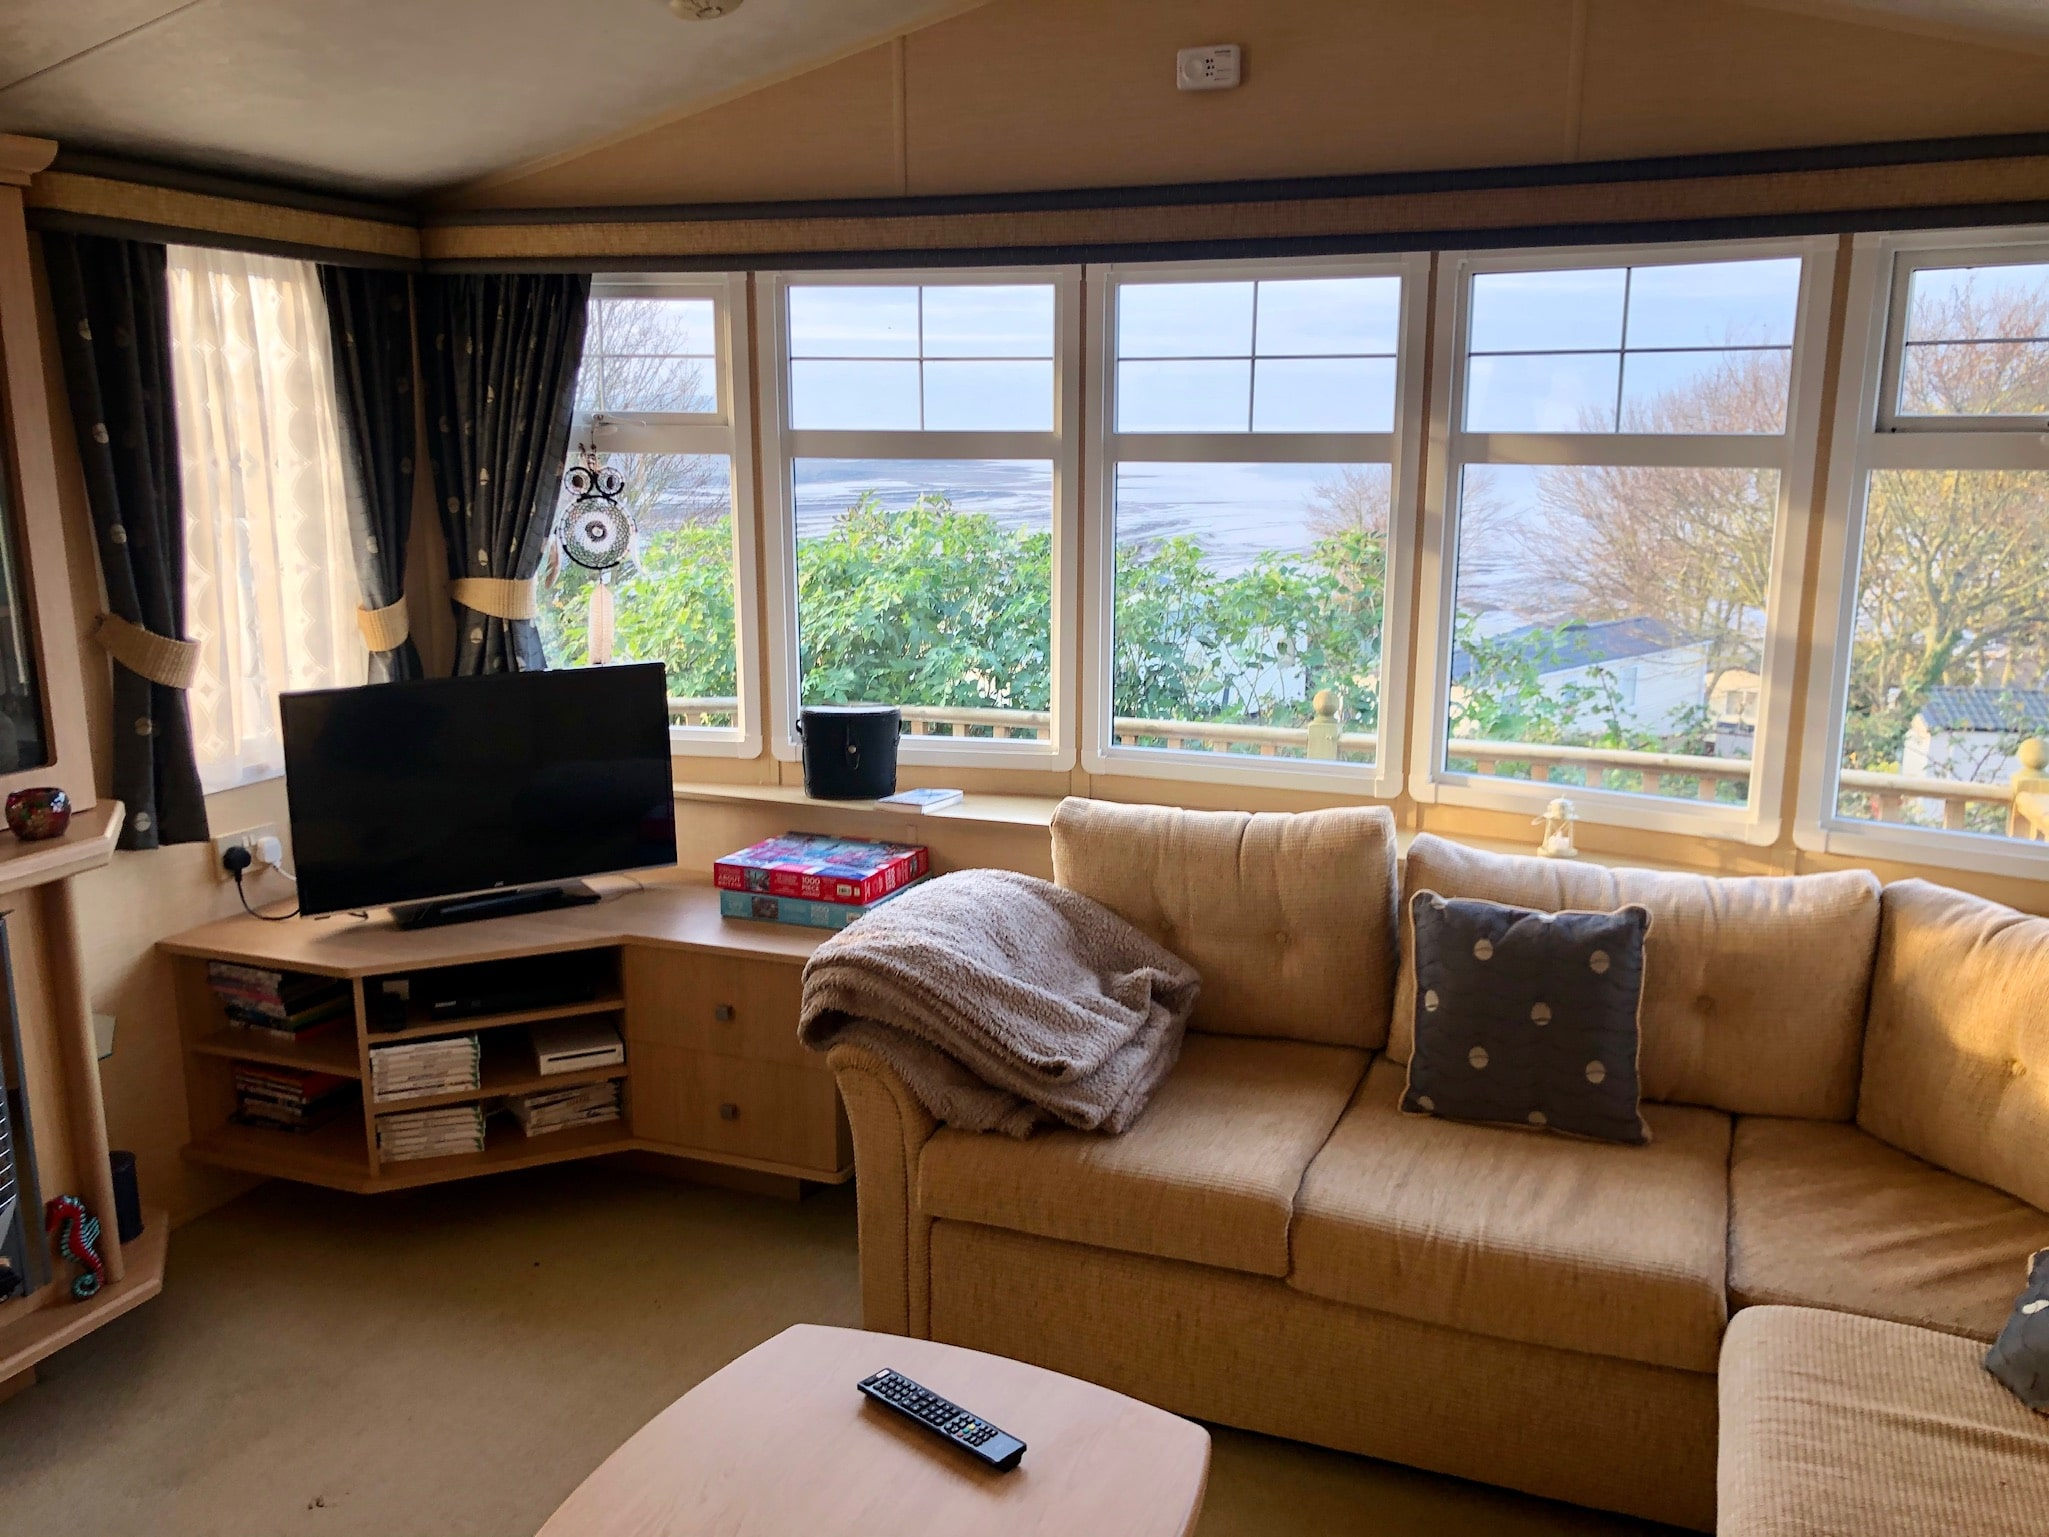 Used static caravan for sale Somerset with sea view